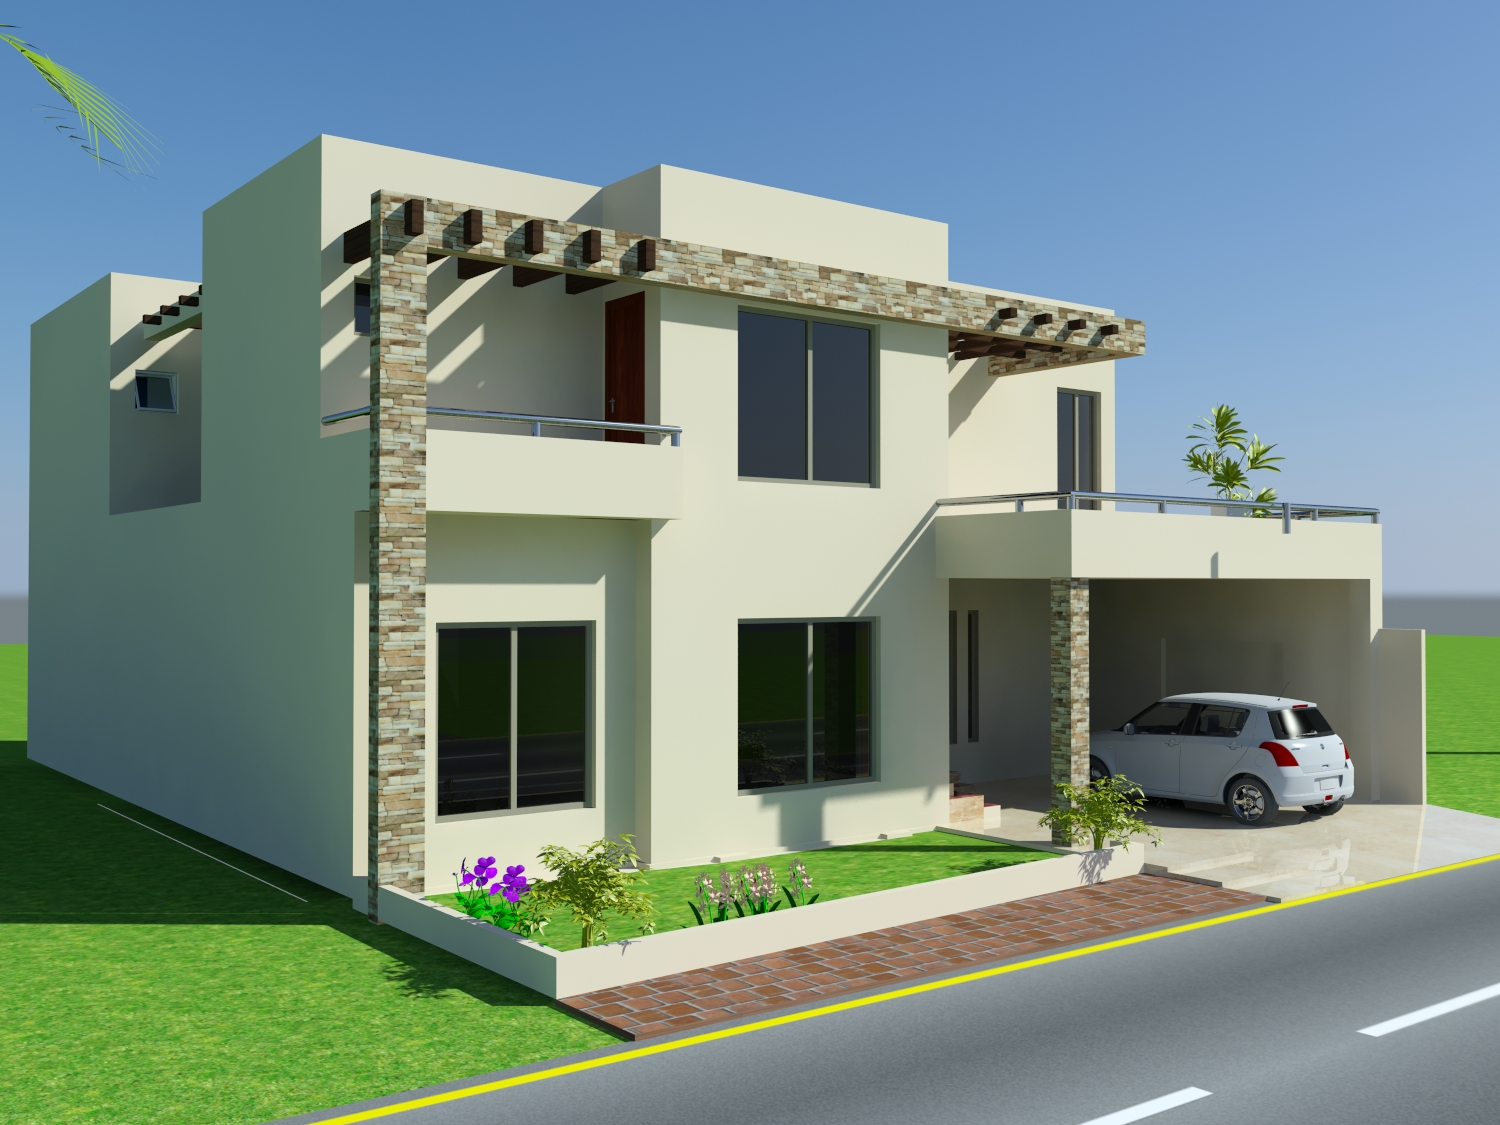 3d front 10 marla house design mian wali 3d home design